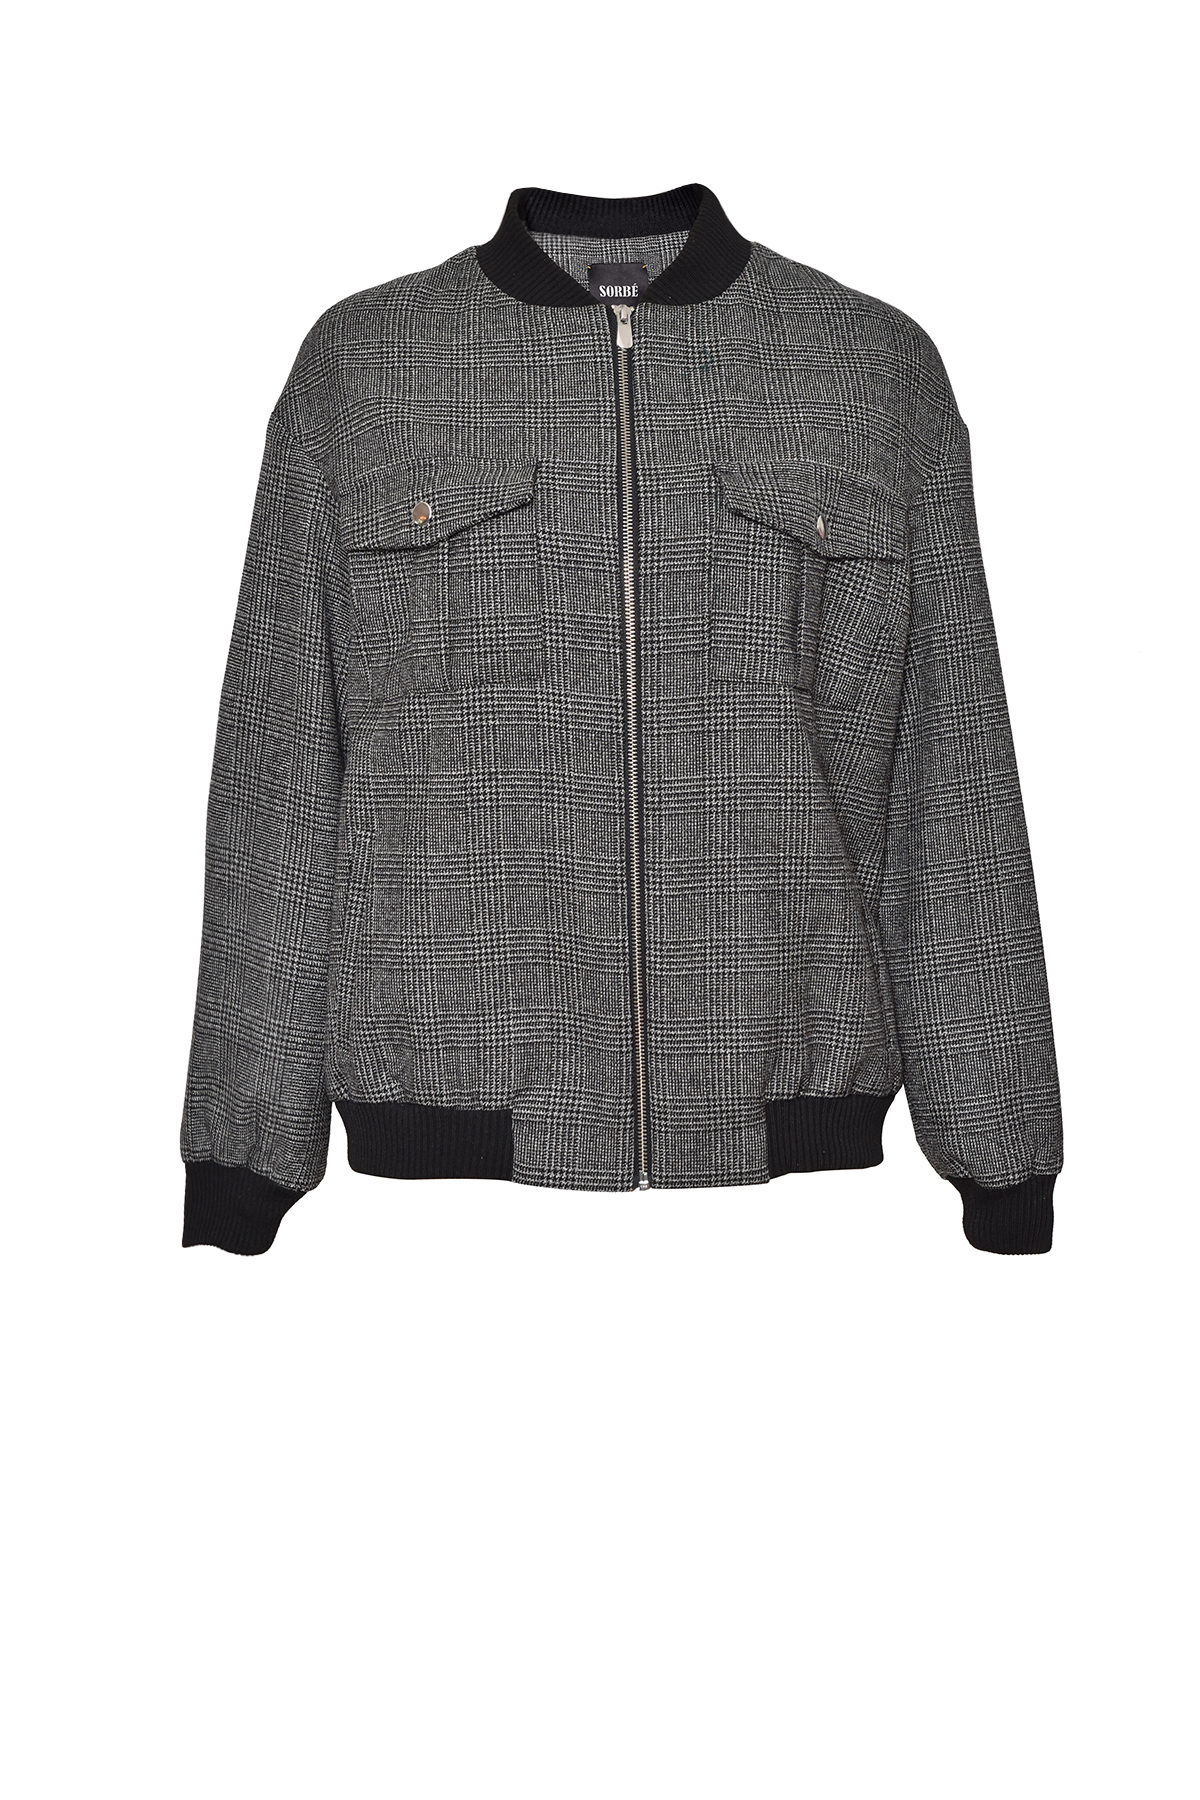 Bomber Jacket - Black Checked by Sorbé on curated-crowd.com